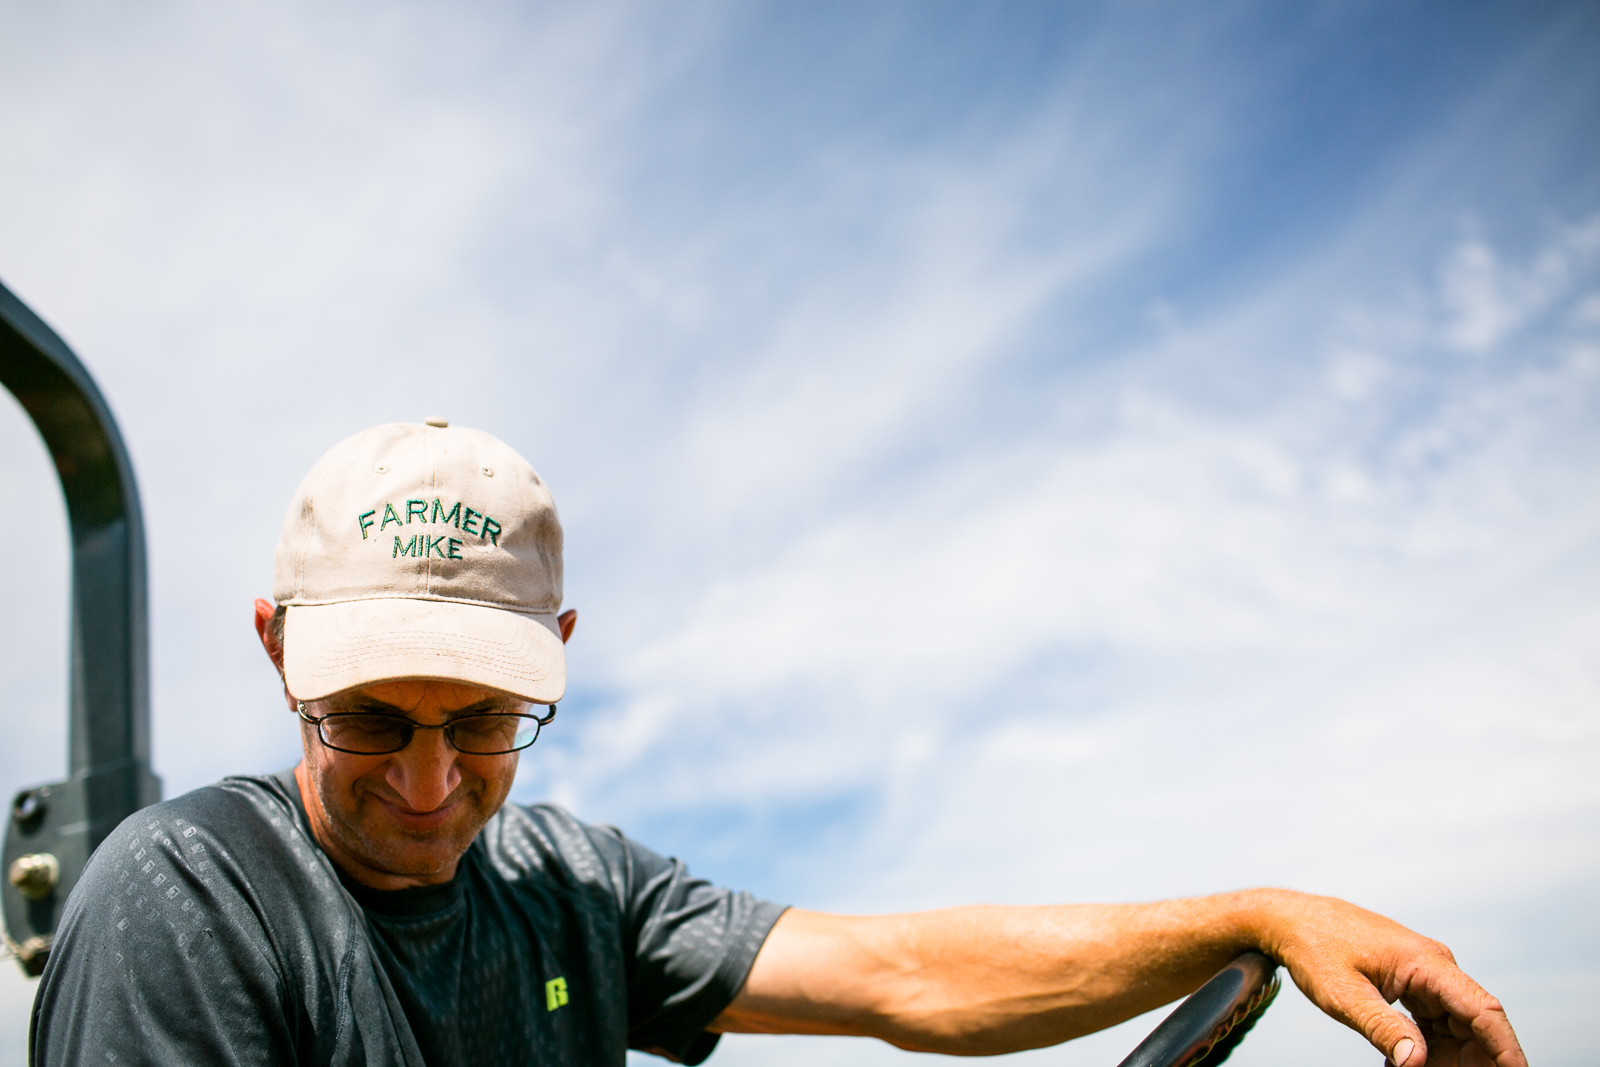 Mike Isham, {quote}Farmer Mike,{quote} shows off his hat at Isham Family Farm, a diversified farm in Williston, Vermont, on Tuesday, August 9, 2016.